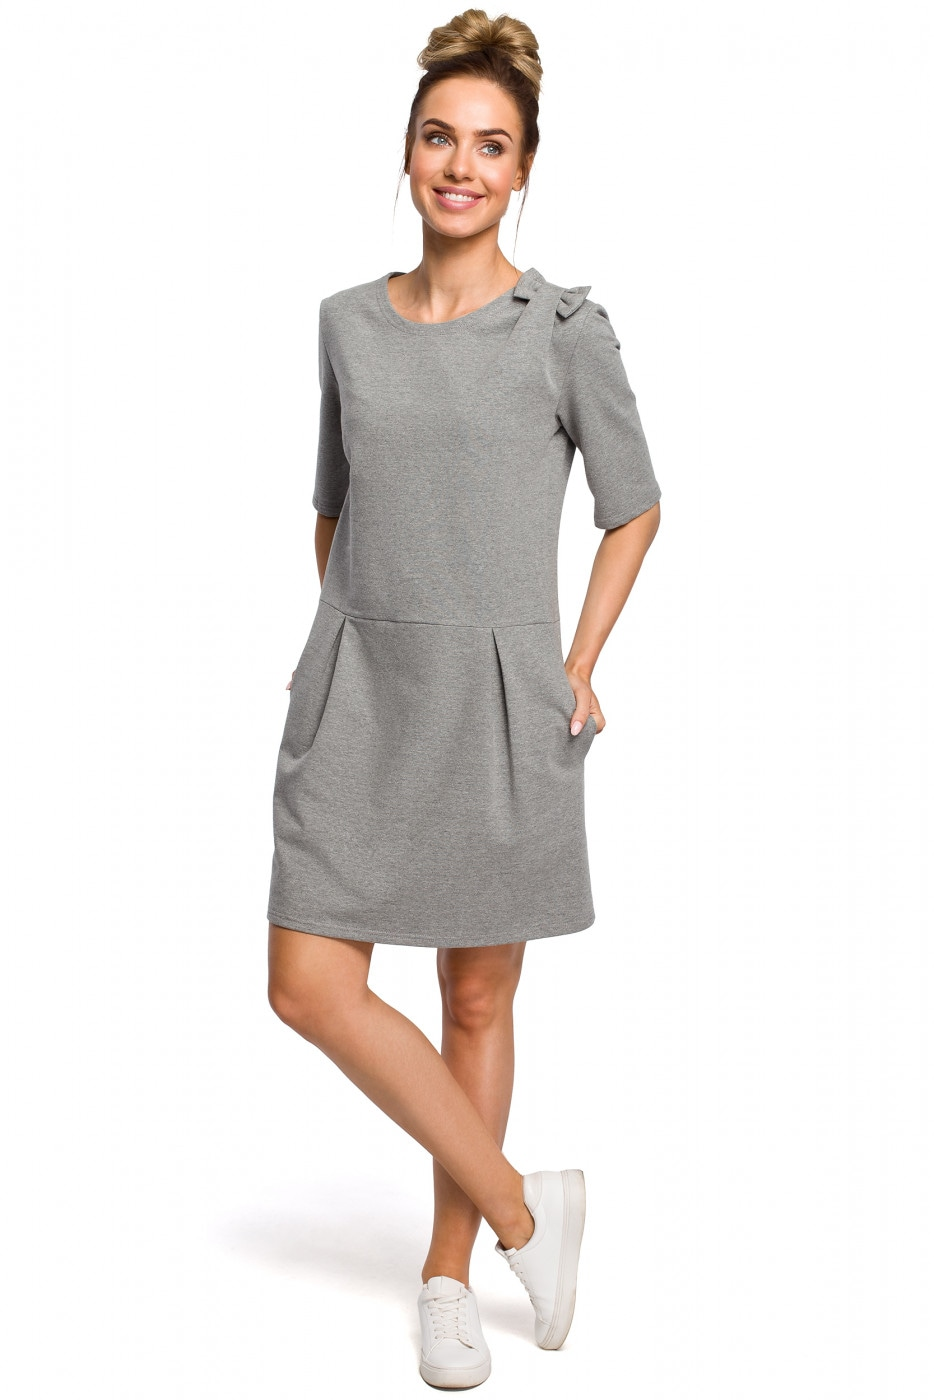 Made Of Emotion Woman's Dress M422